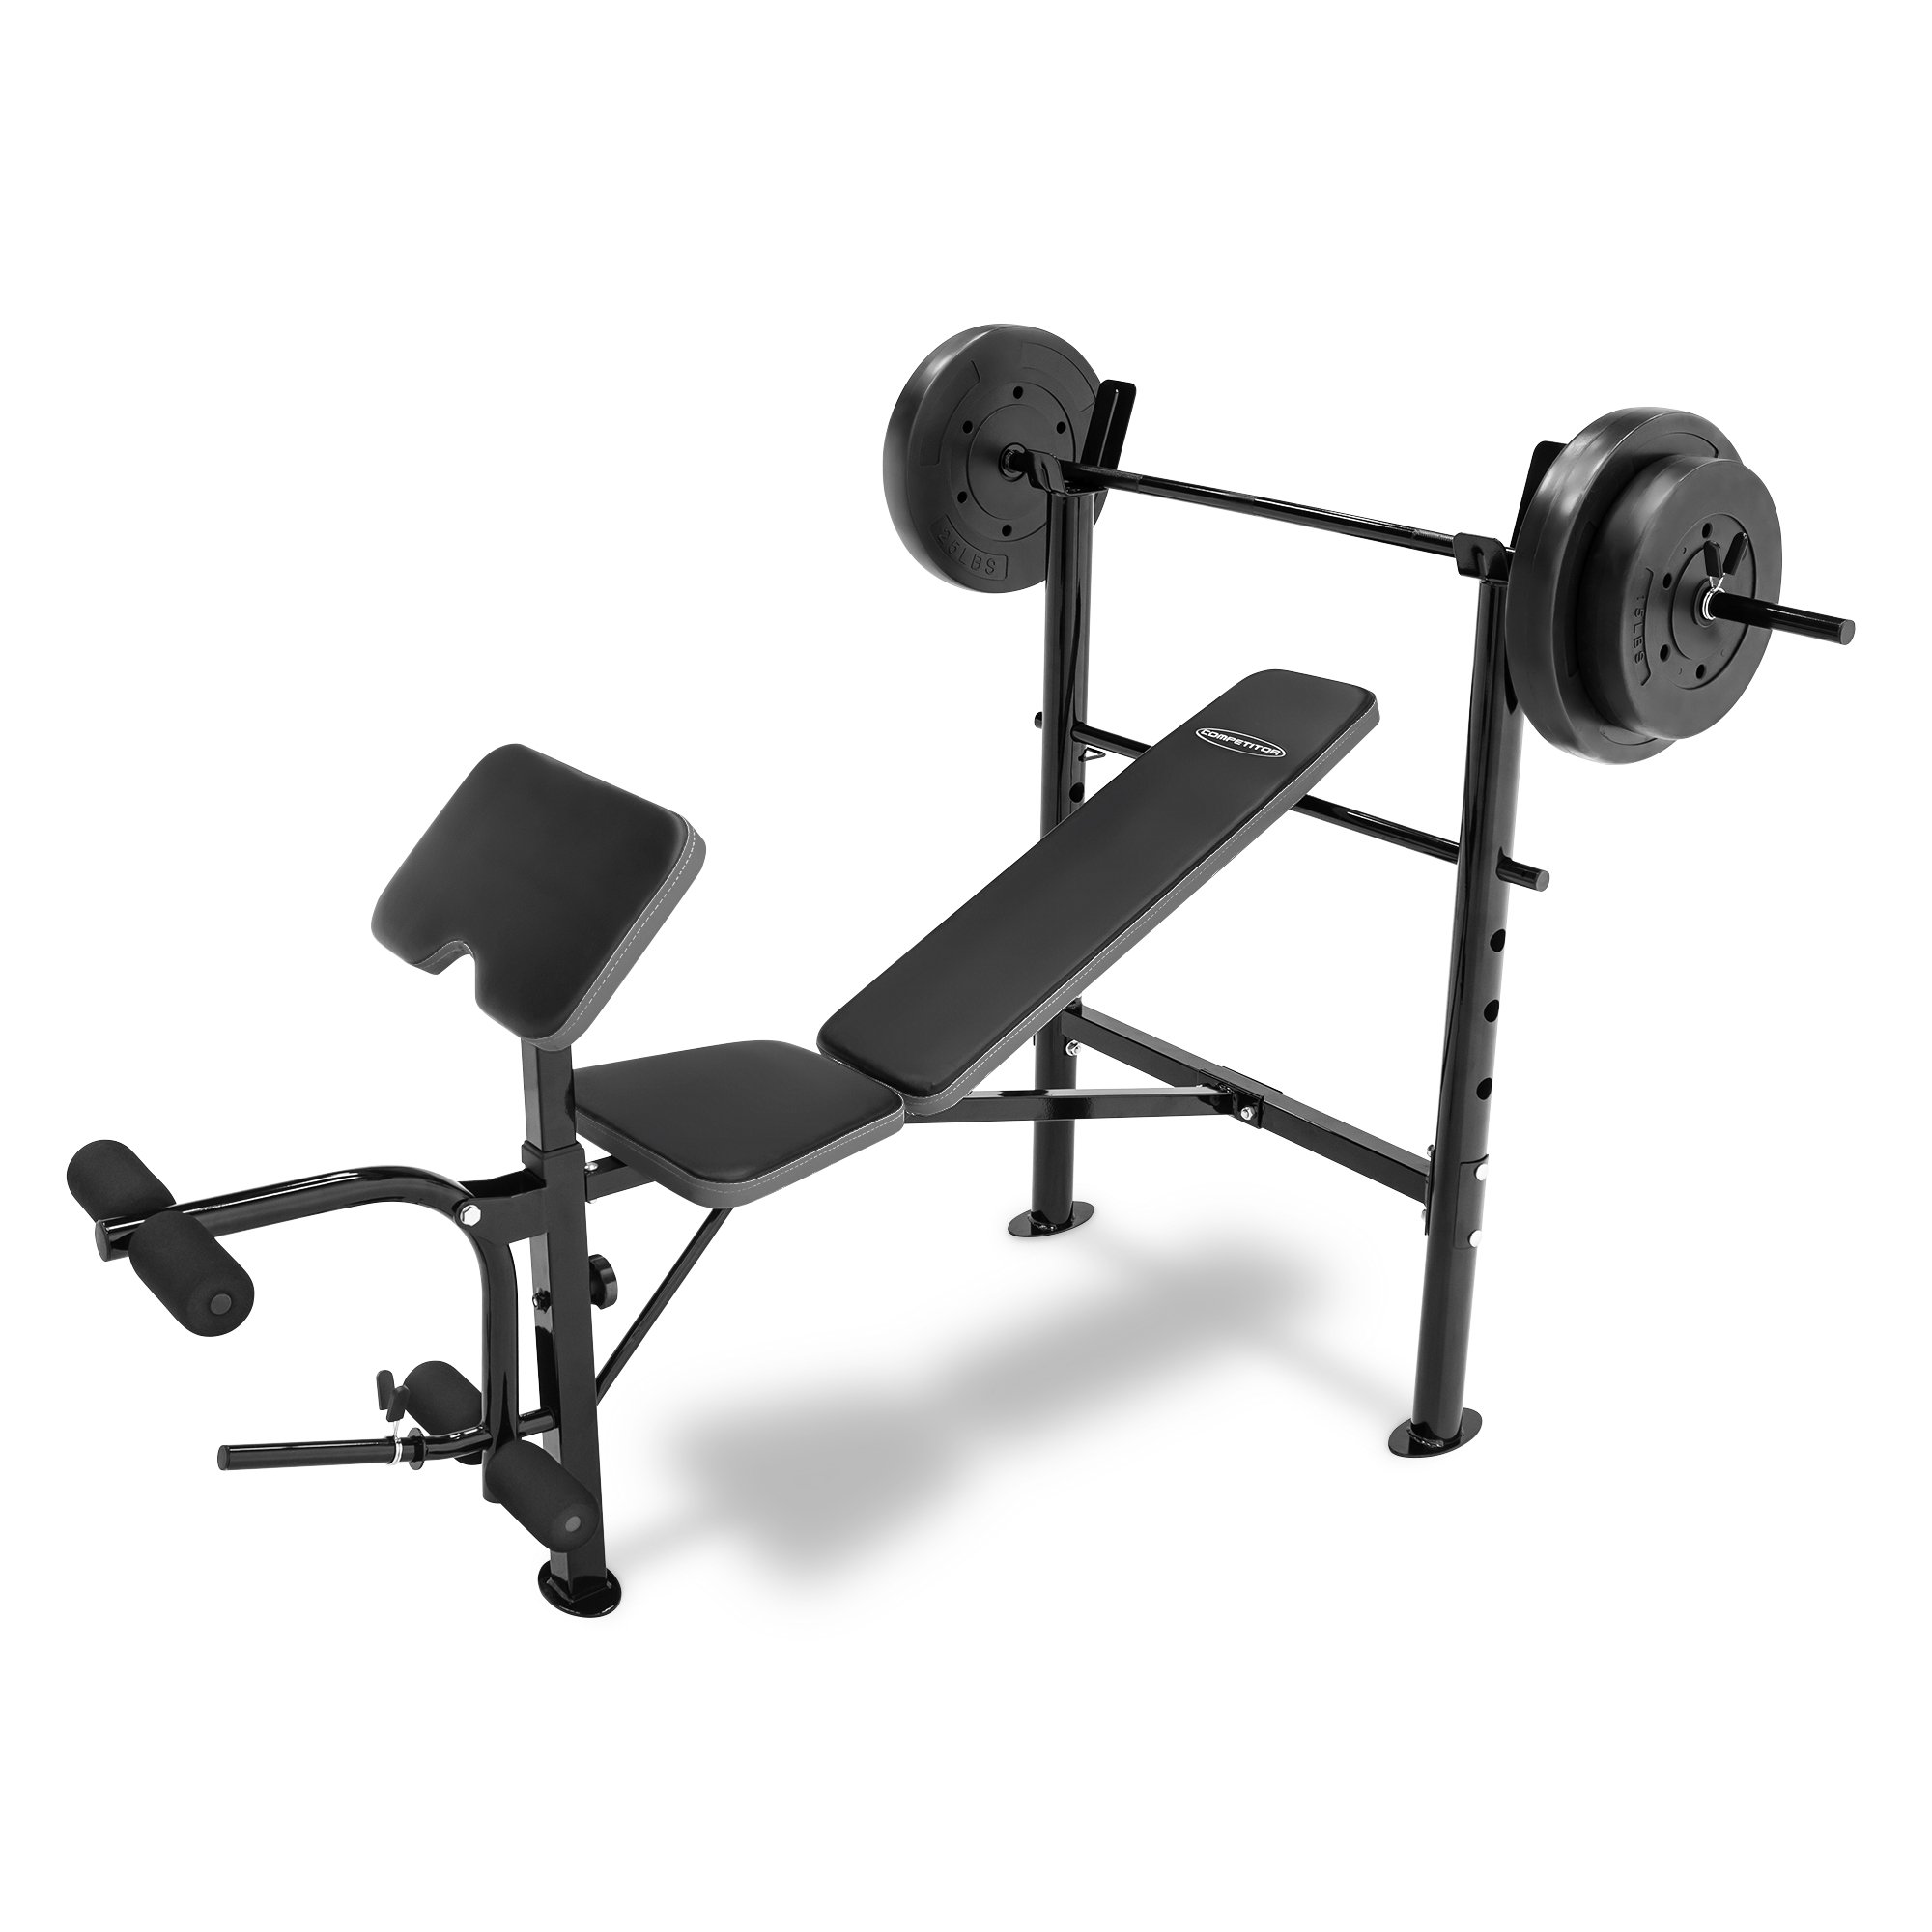 Marcy Competitor Workout Bench with 80 lbs weight Set Combo (black) - CB-20110